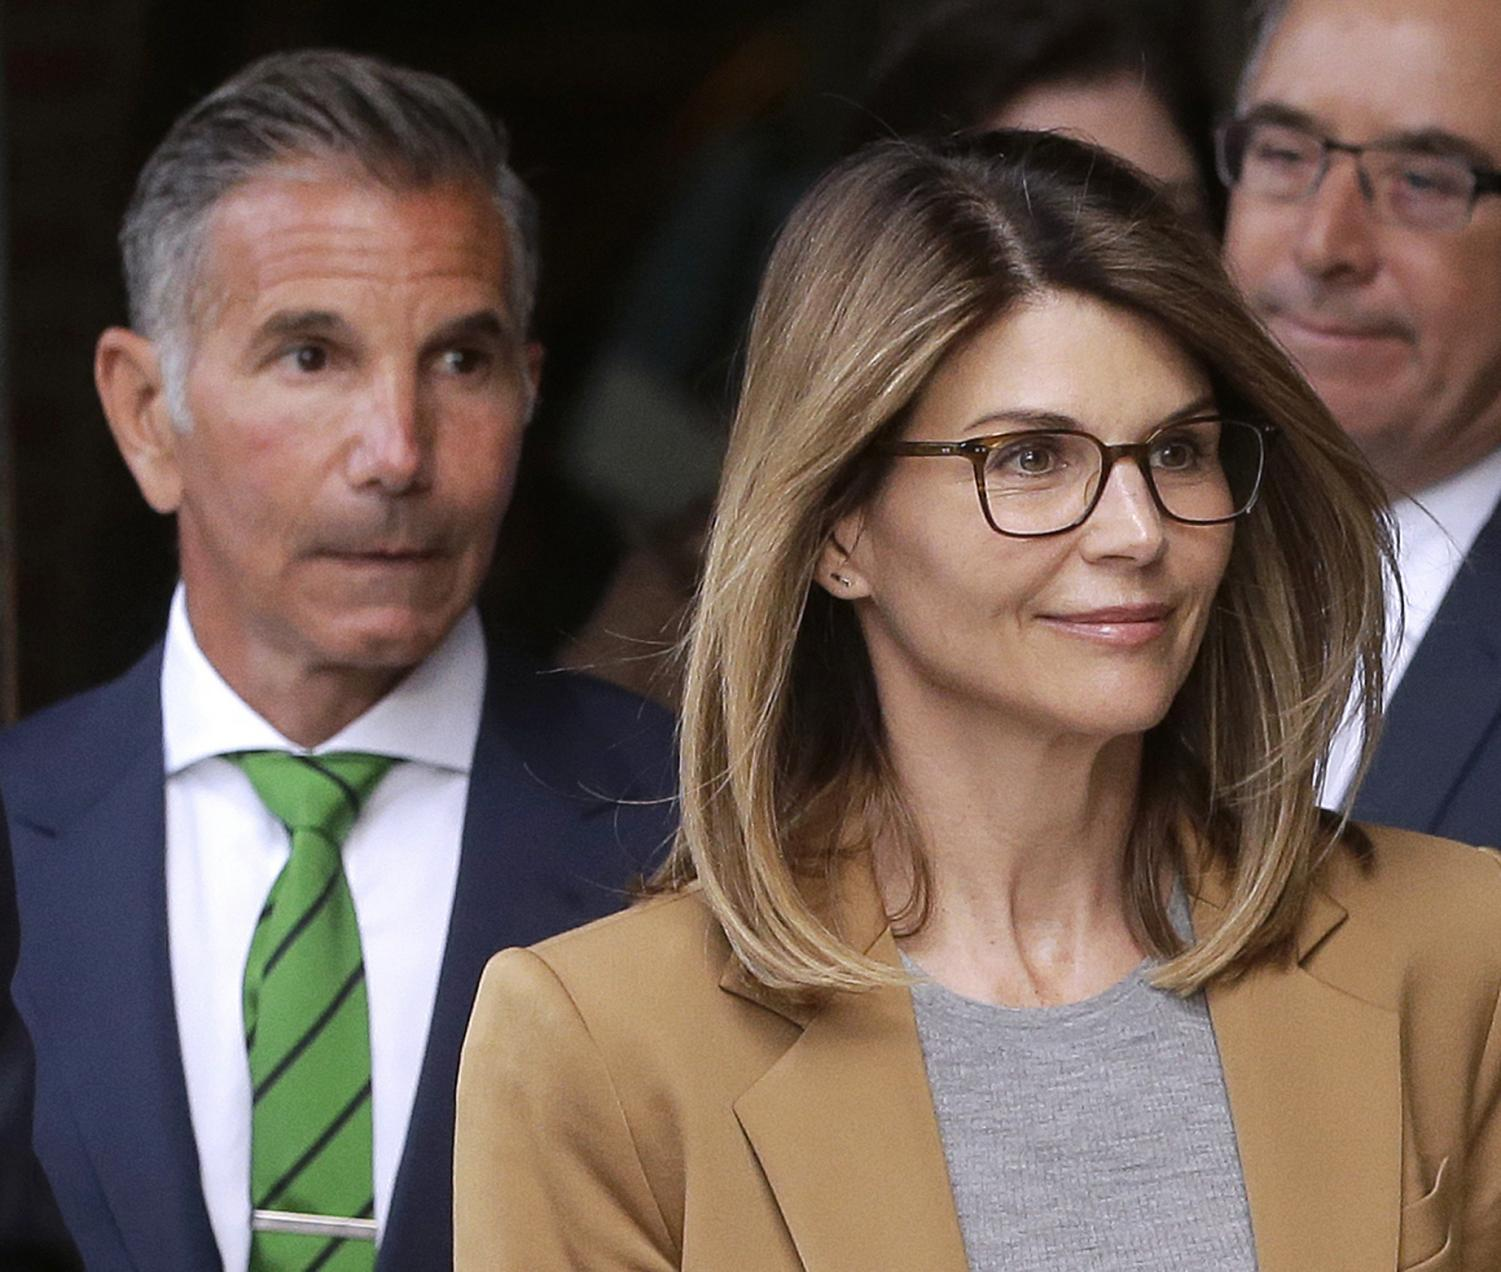 Actress Lori Loughlin, front, and husband, clothing designer Mossimo Giannulli, left, depart federal court in Boston after facing charges in a nationwide college admissions bribery scandal. On Tuesday, April 9, Loughlin and Giannulli were among 16 prominent parents indicted on an additional charge of money laundering conspiracy in the case. (AP Photo/Steven Senne, File)